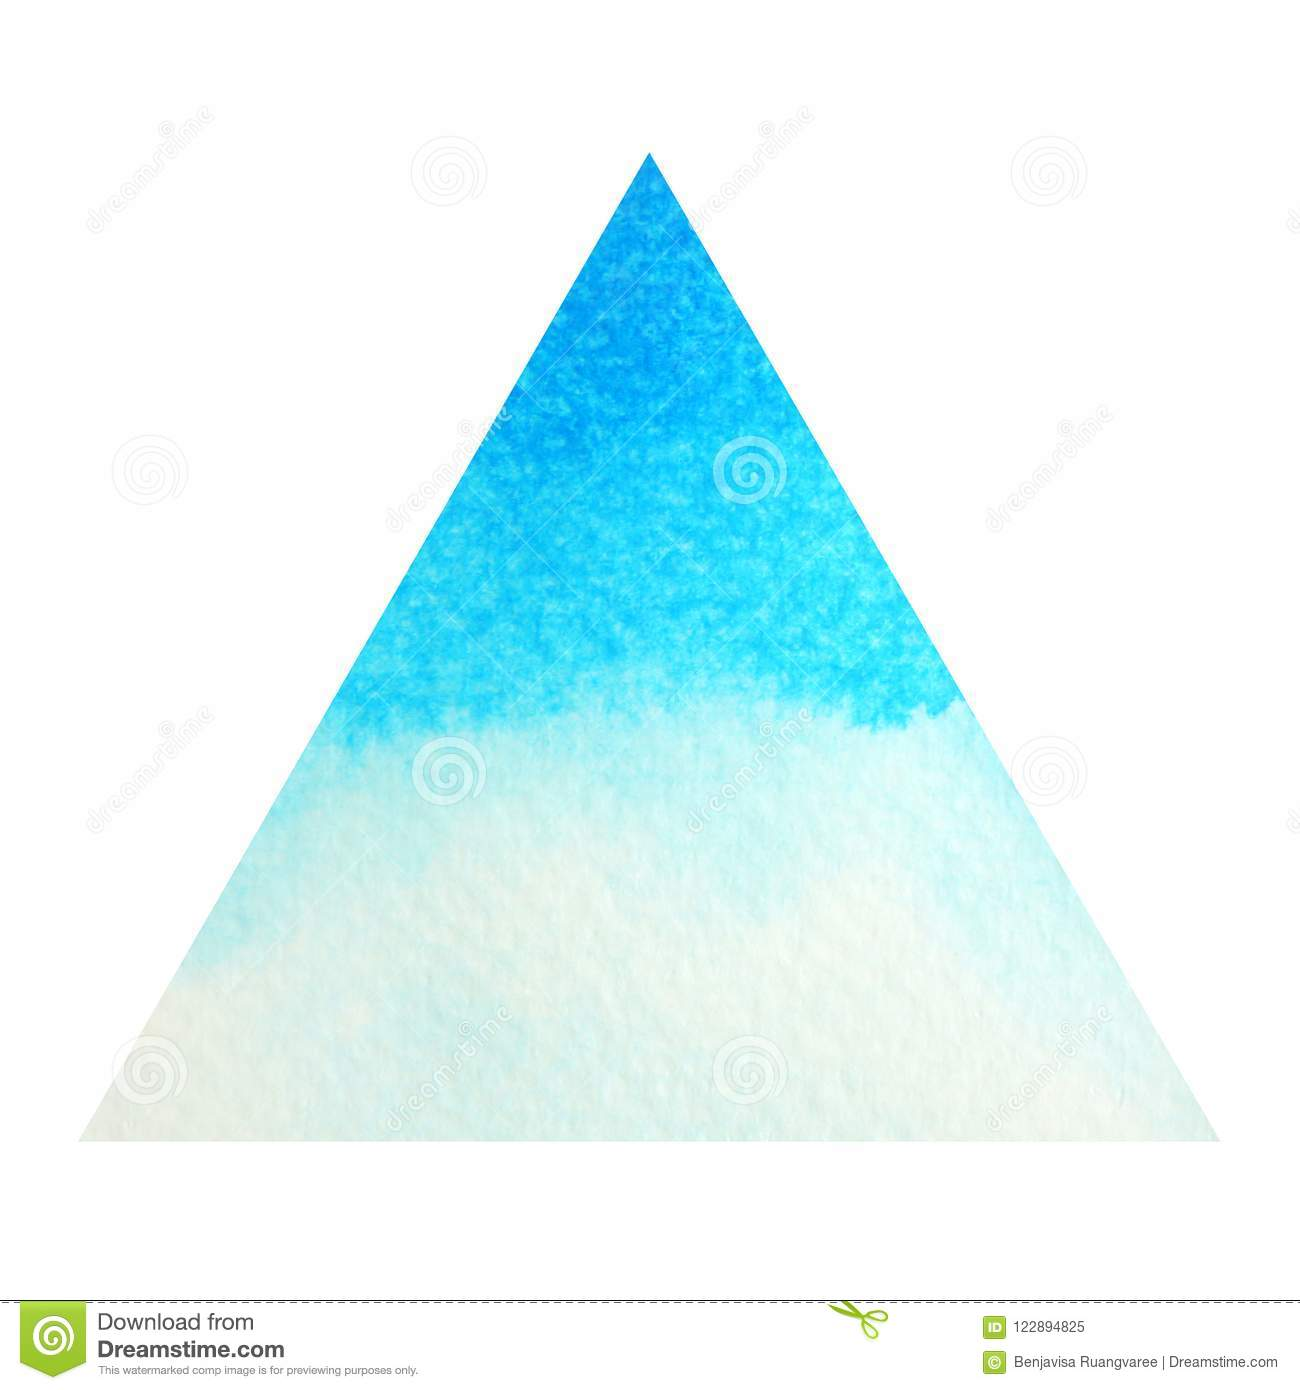 Blue color of chakra symbol throat concept, watercolor painting